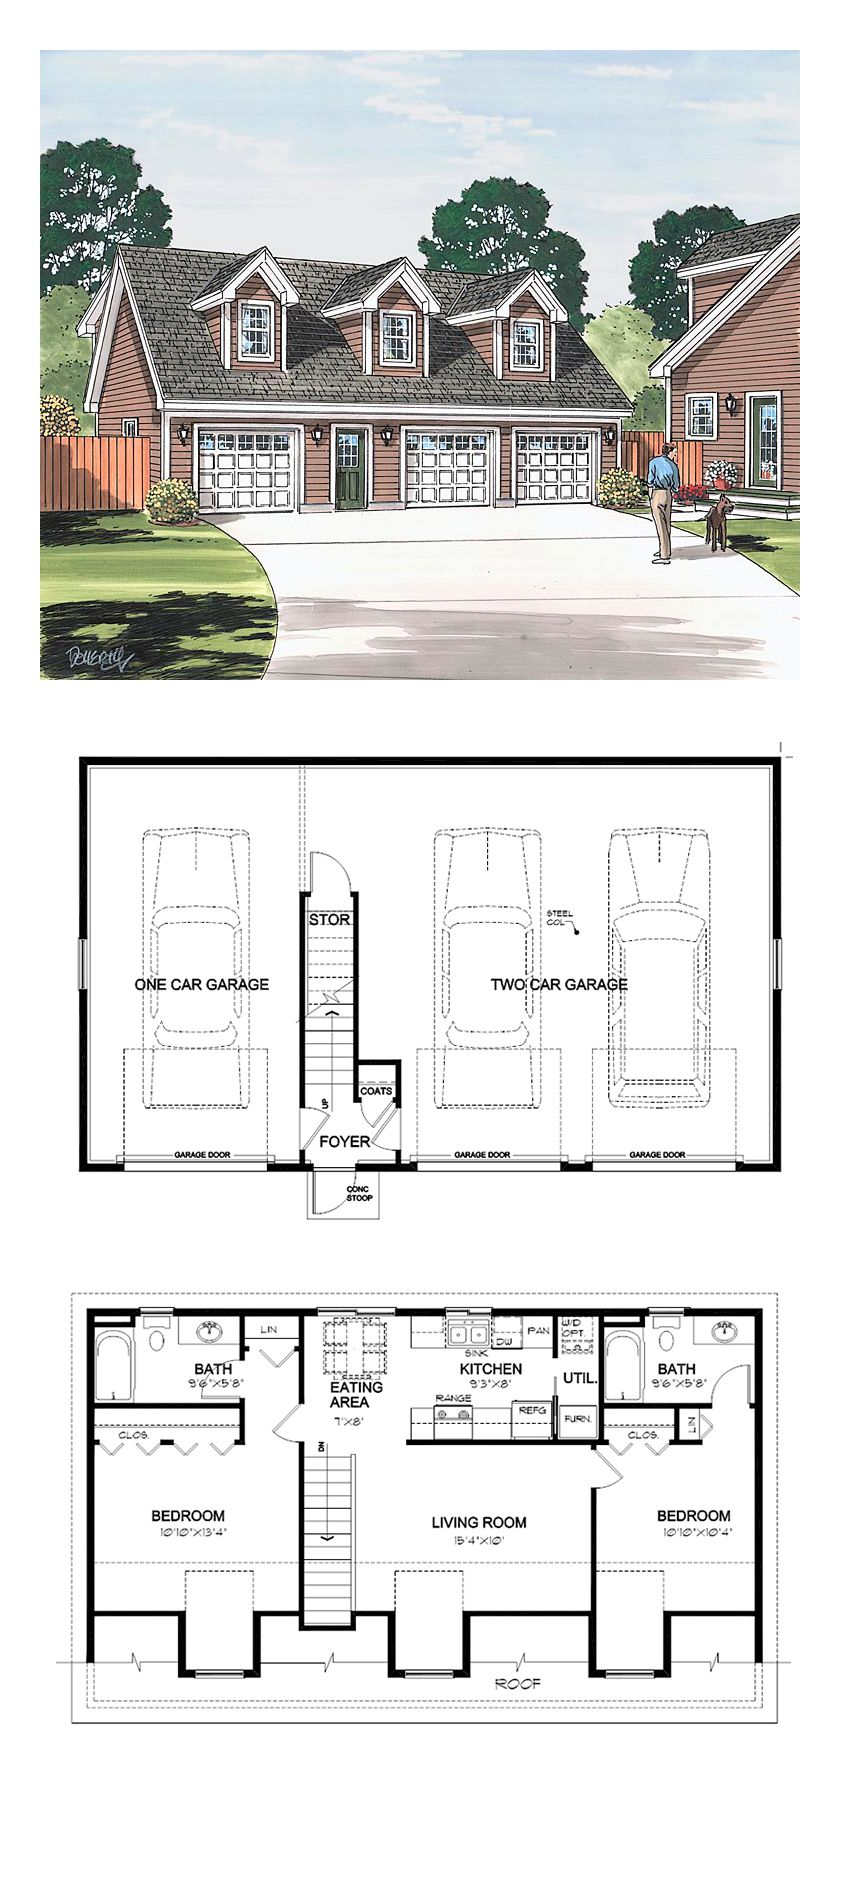 Garage apartment plan 30032 total living area 887 sq for Garage apartment blueprints